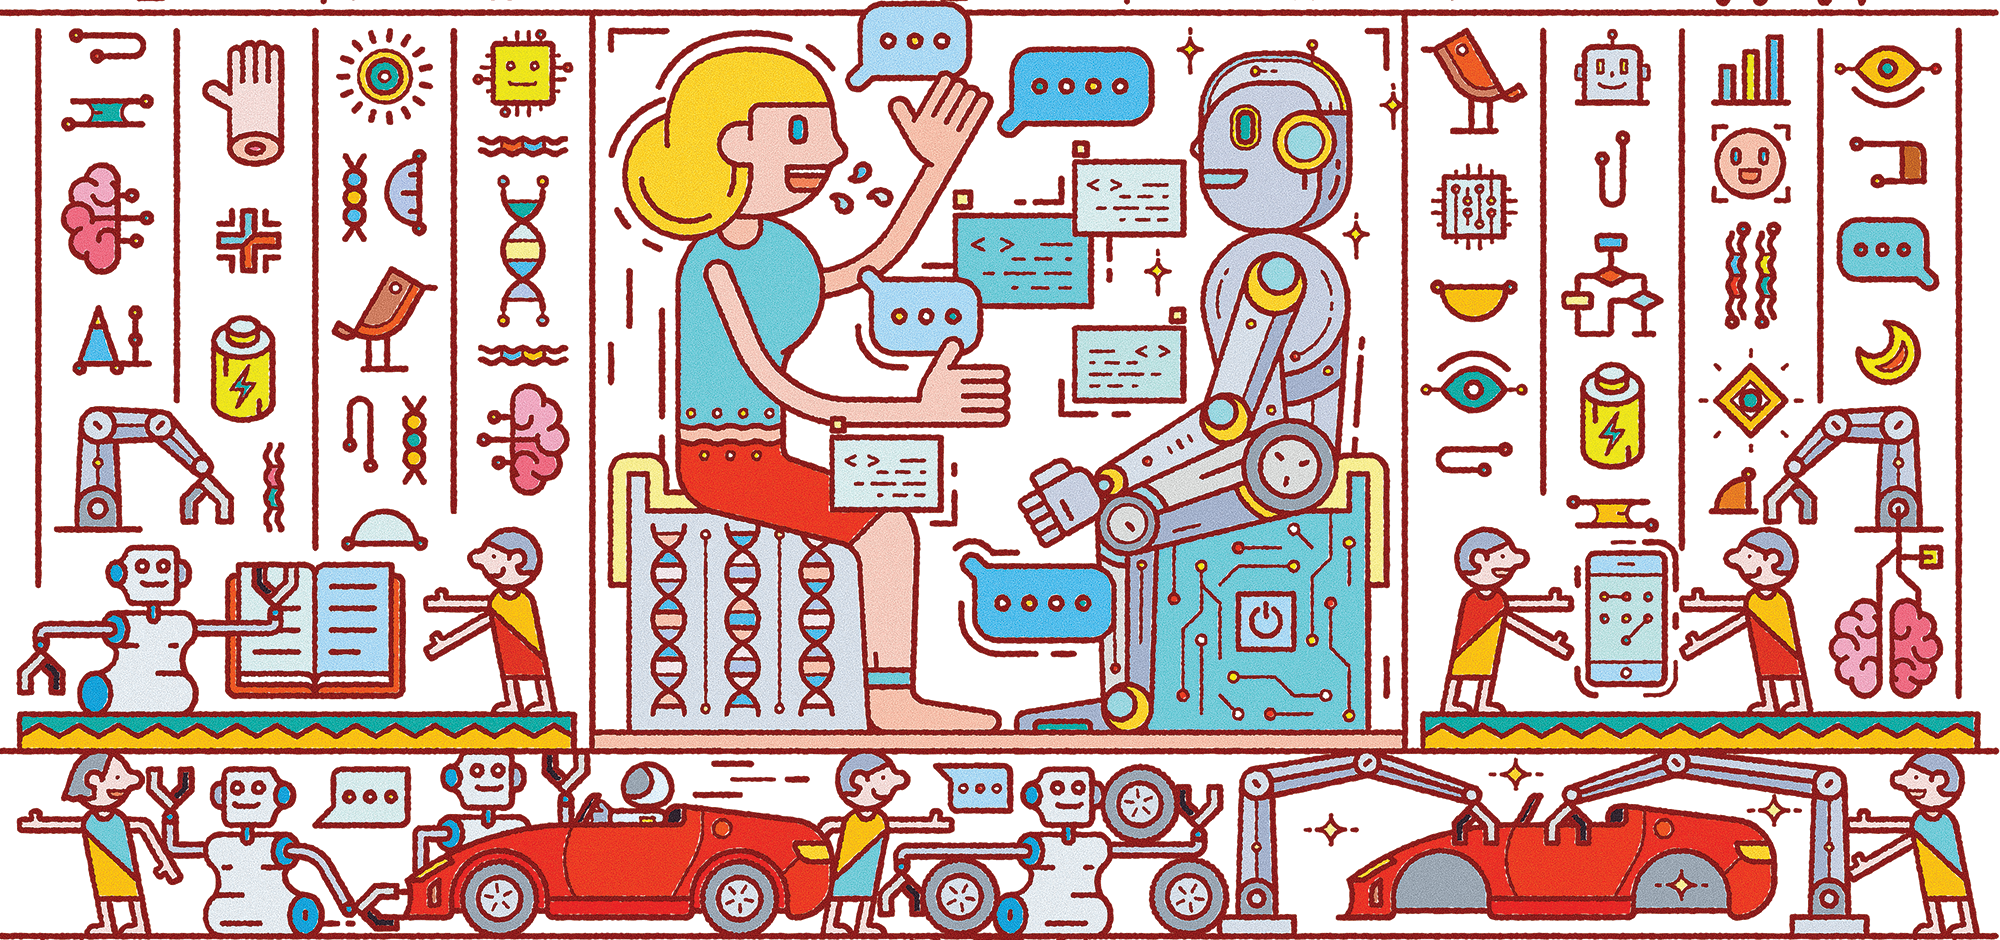 Harvard Business Review -  https://hbr.org/2018/07/collaborative-intelligence-humans-and-ai-are-joining-forces